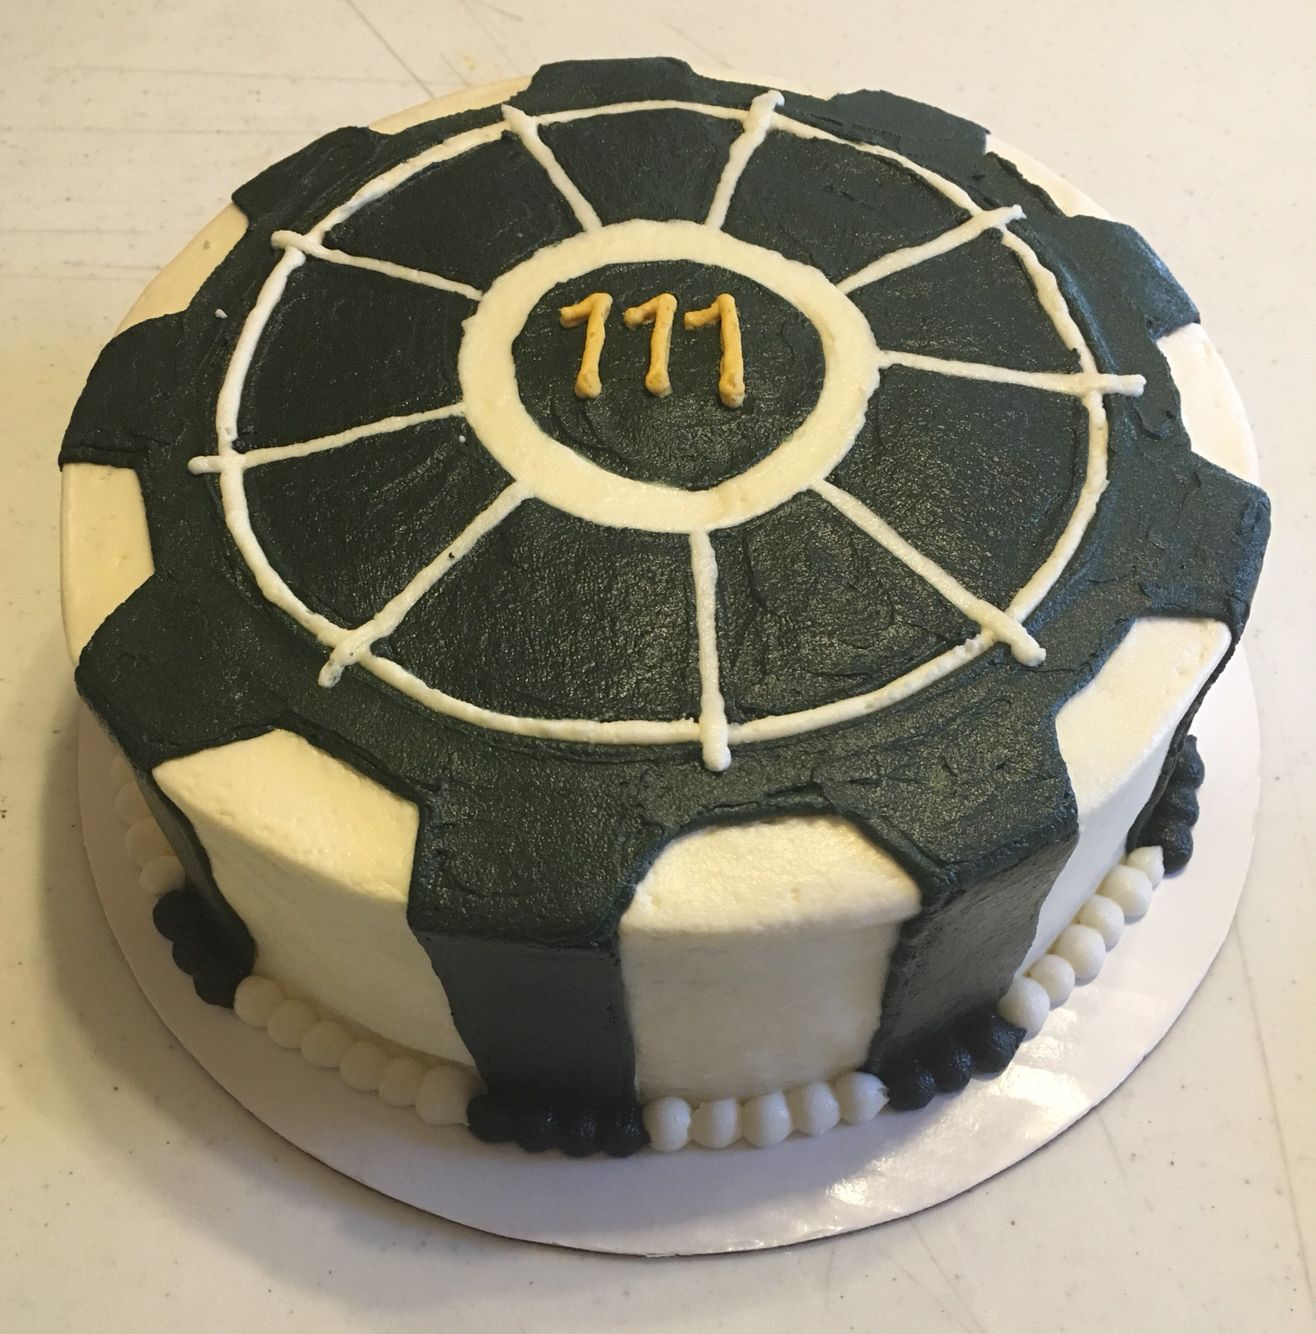 Fallout Vault Door fallout vault door cake | buttercreams: cakes for every occasion